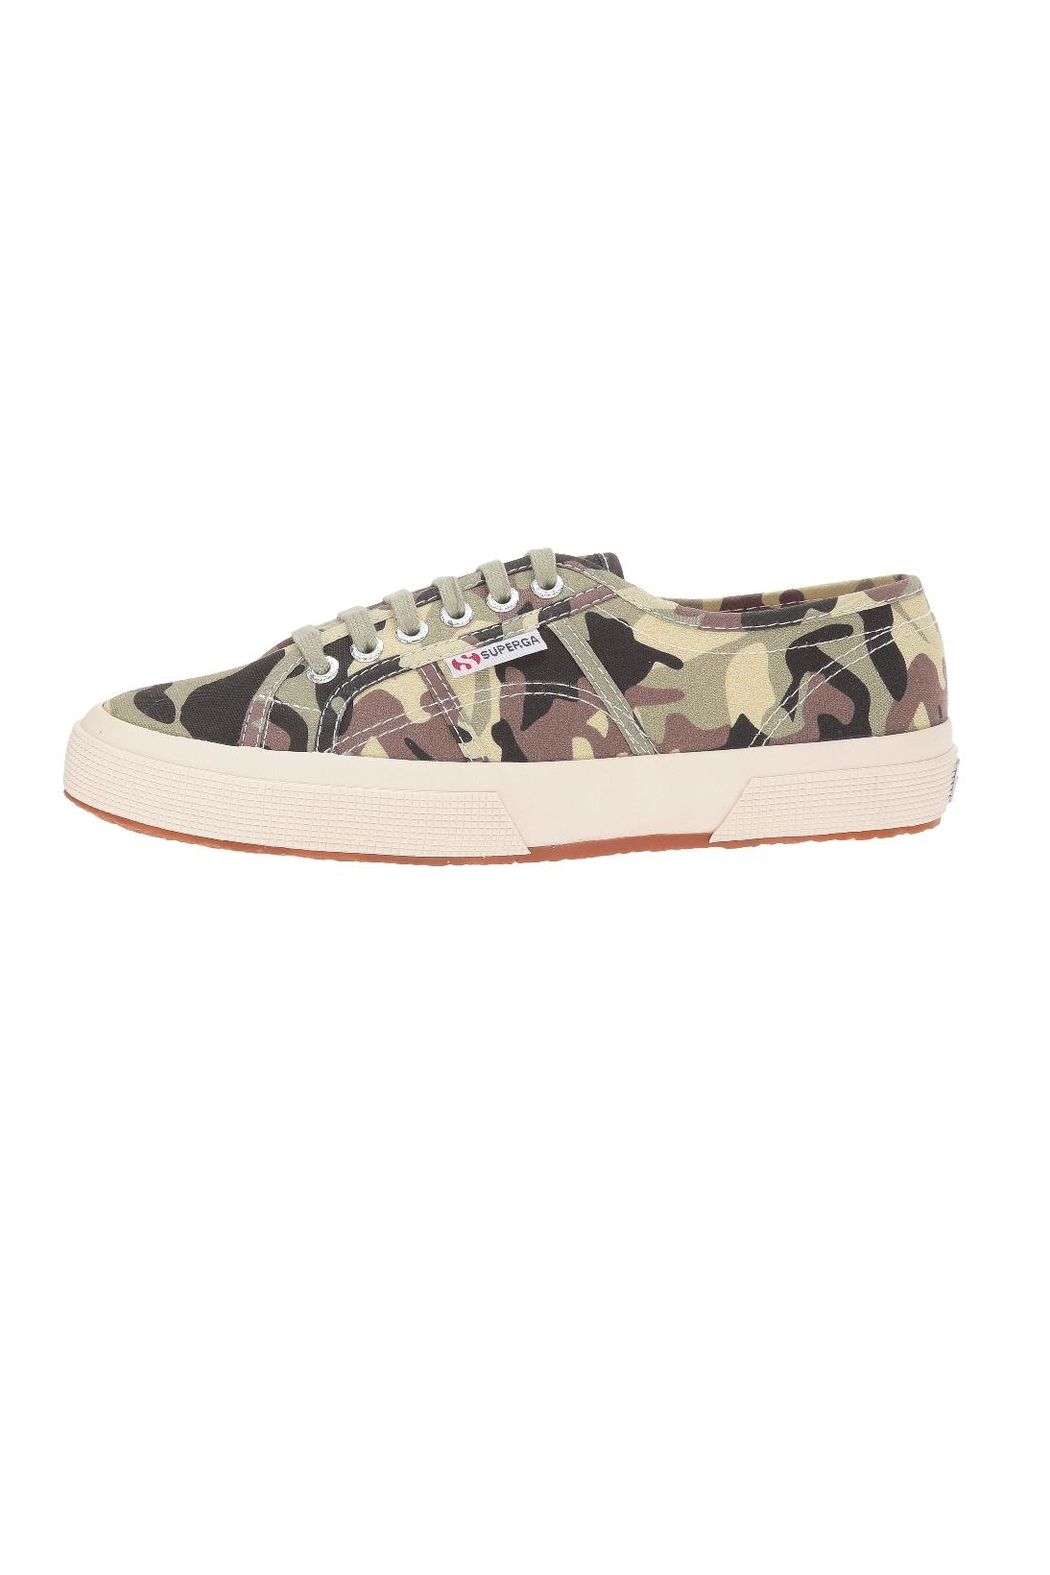 Superga Camouflage Sneakers - Main Image